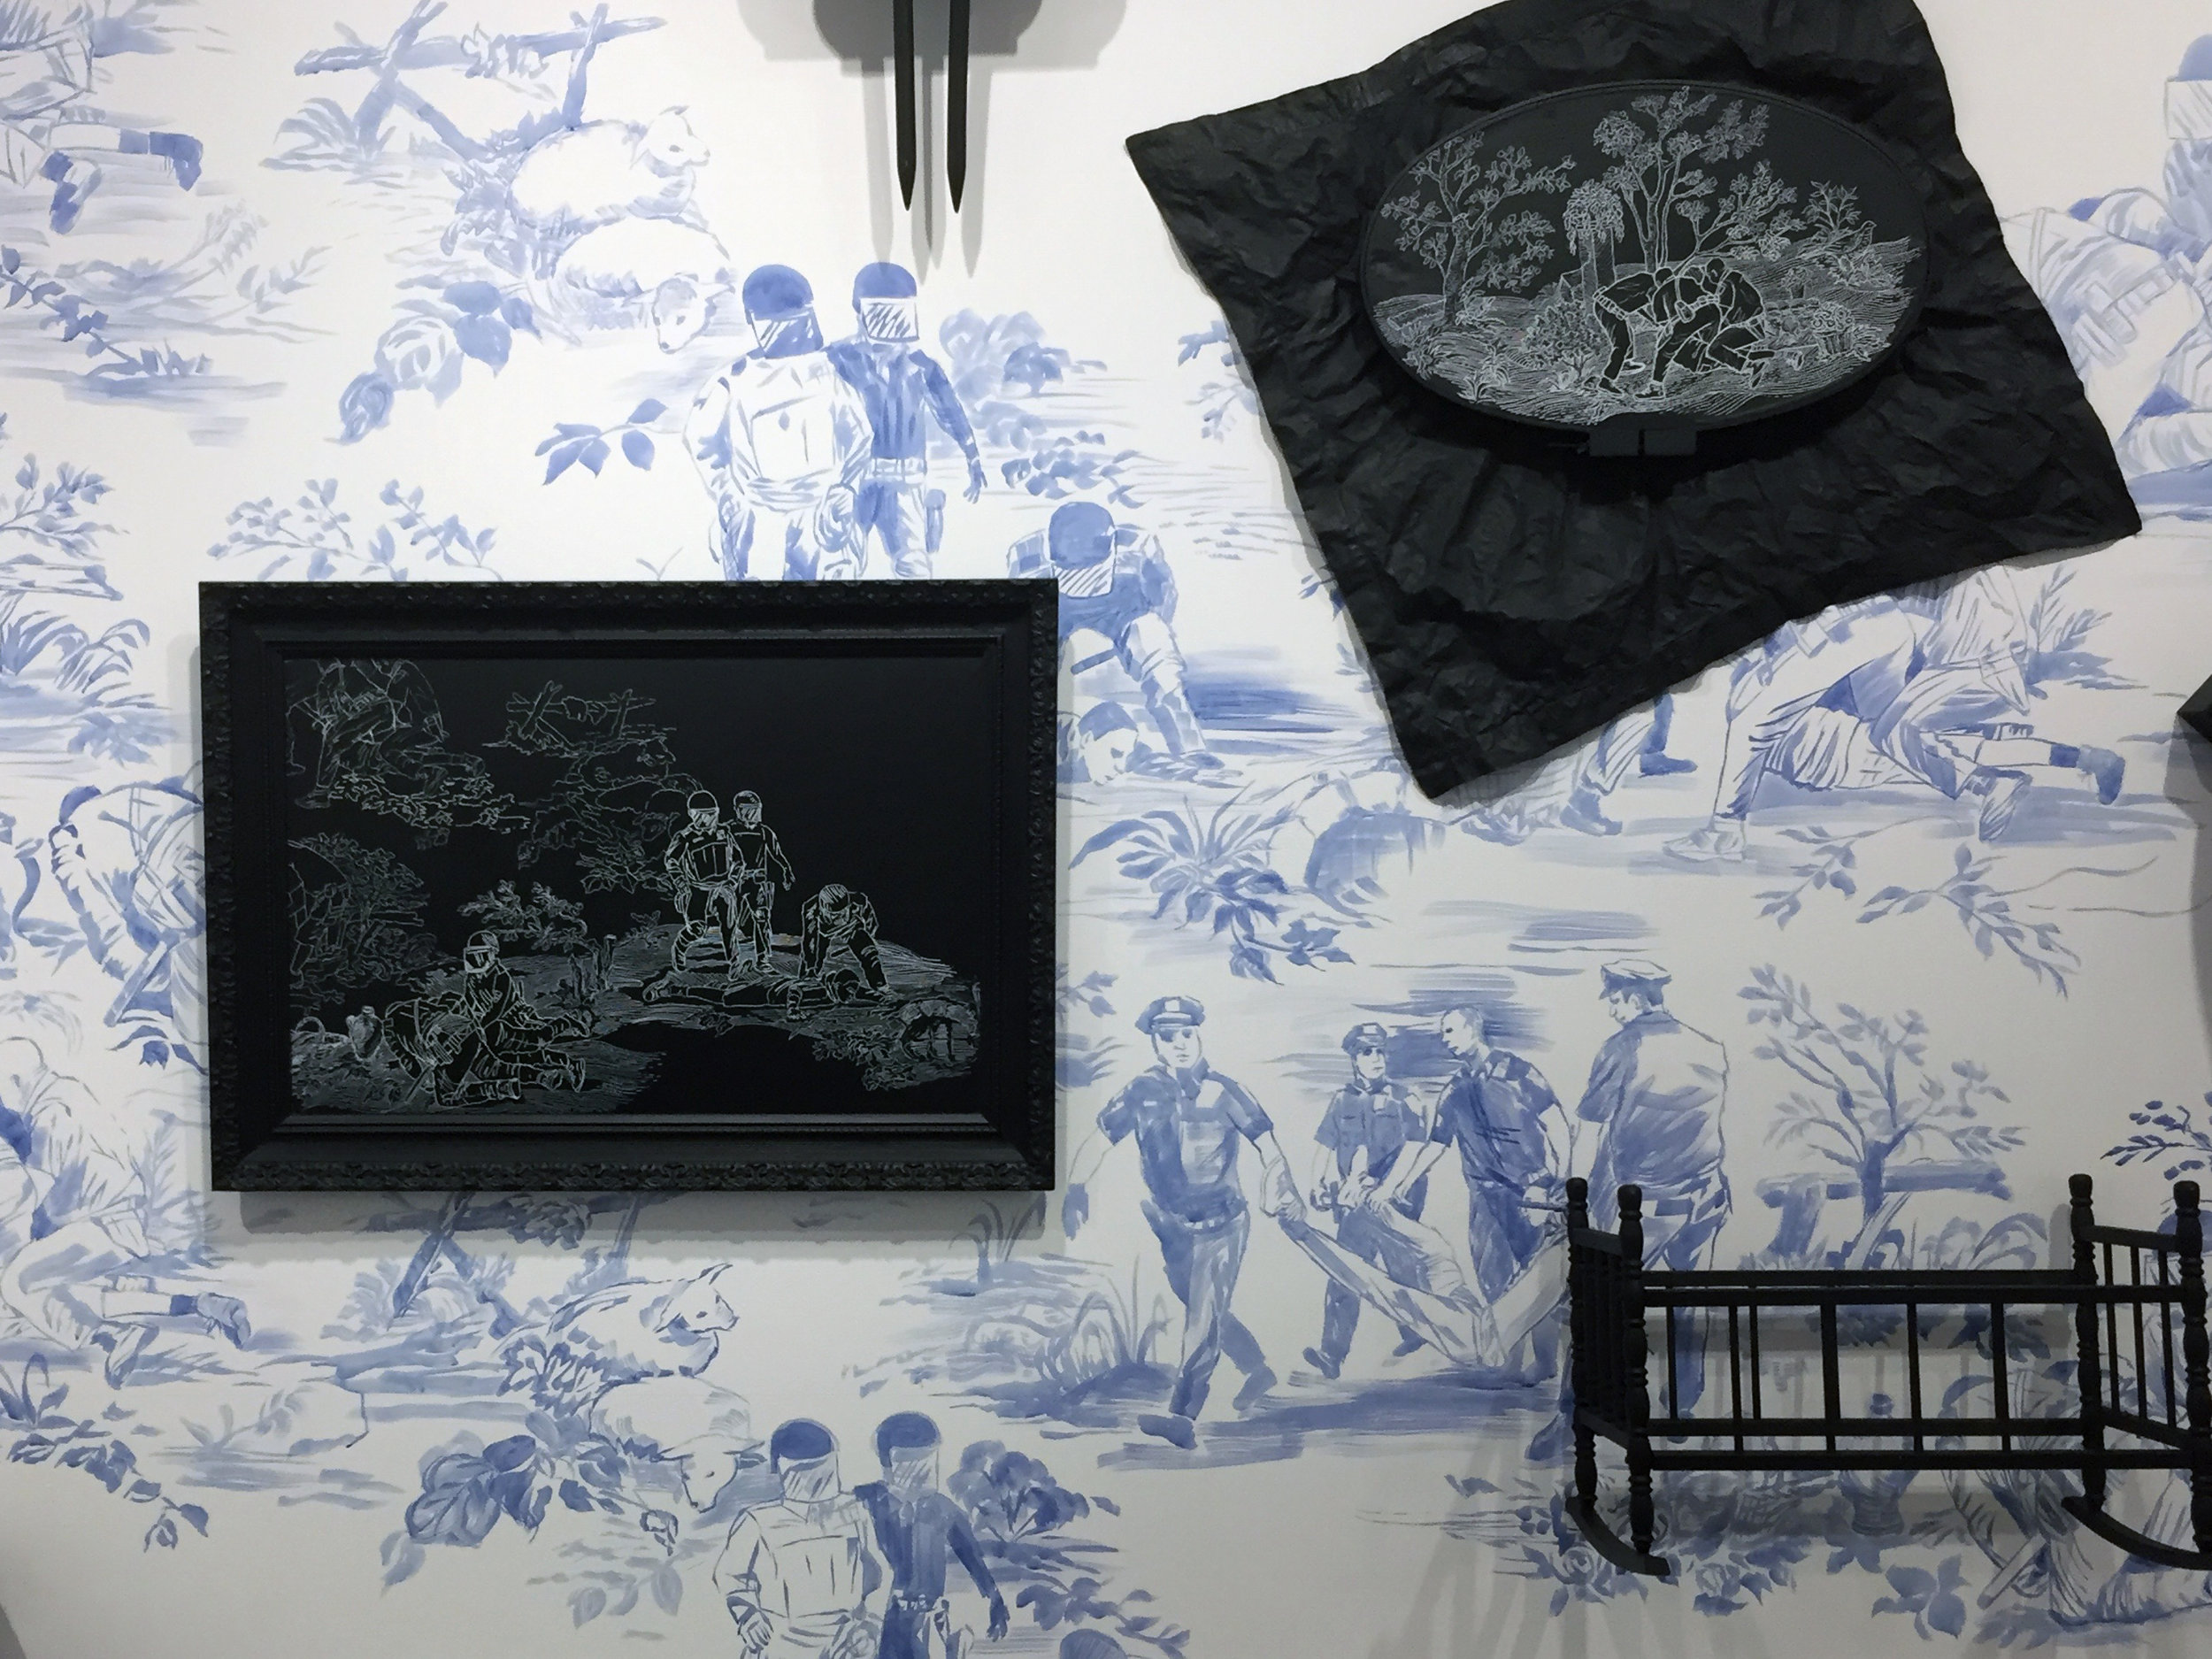 Hollis Hammonds,Domestic Brutality (detail), 2017, acrylic paint on wall, painted objects & chalk marker,96 x 192 x 18 in.